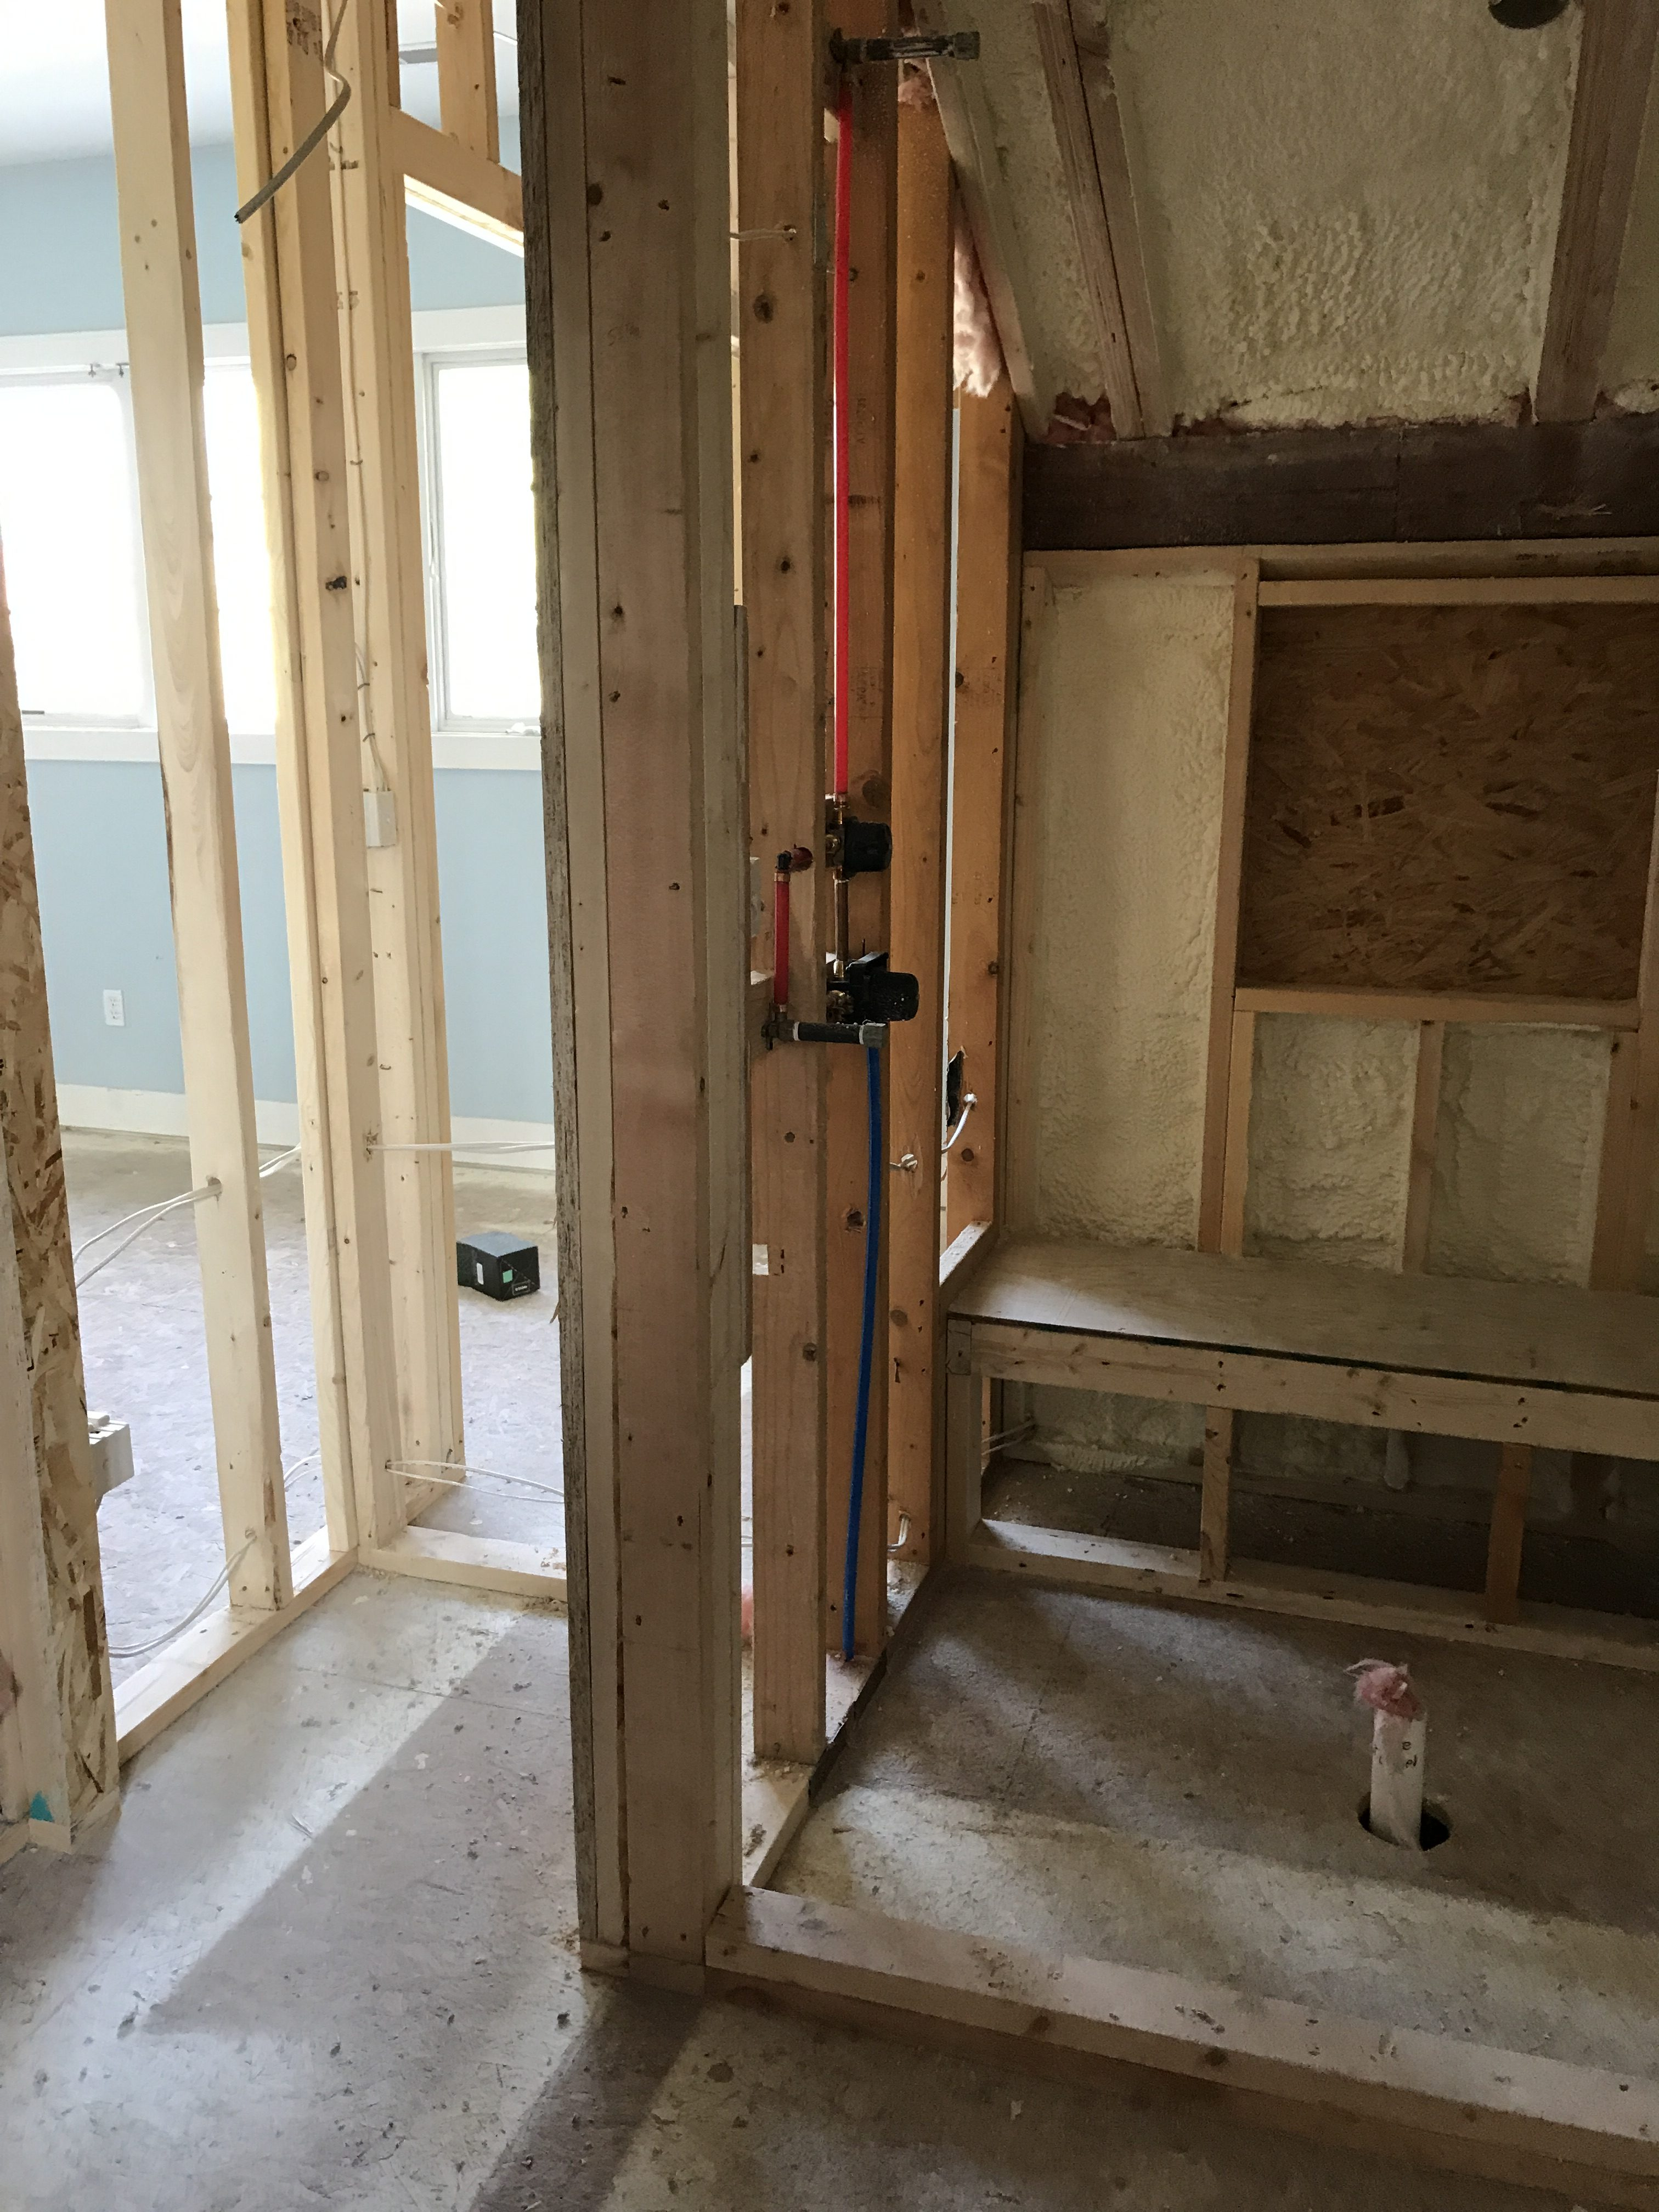 Here is the shower framing going in and beside is the linen closet.